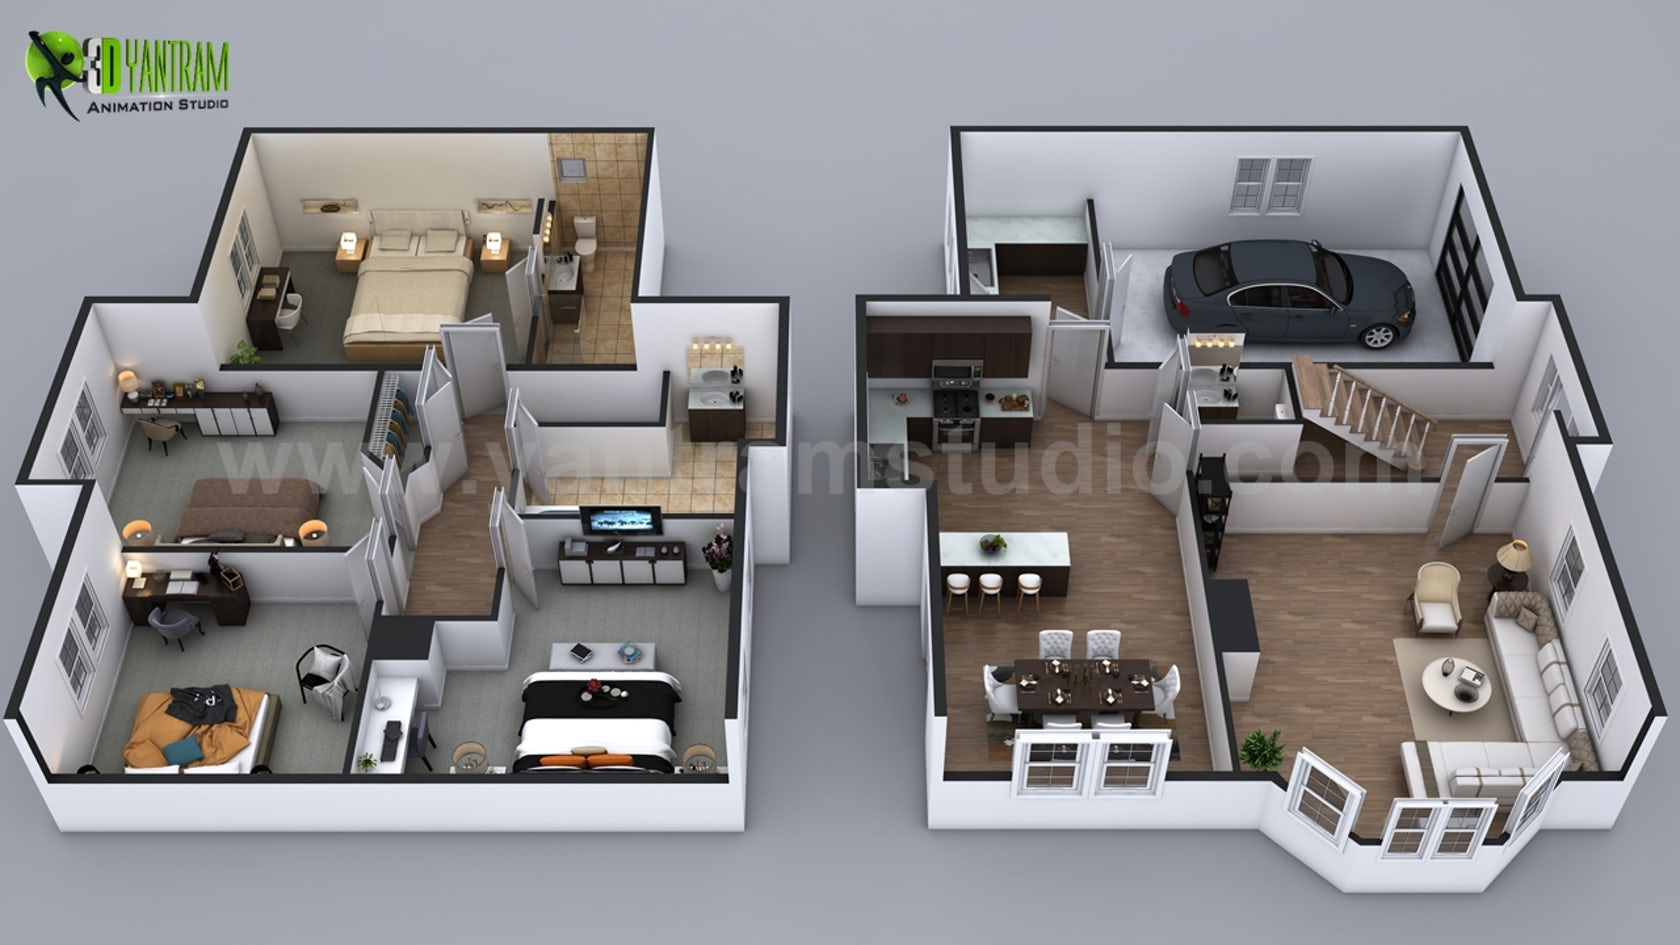 Modern Small House Design With Floor Plan Ideas in Milan, Italy by ...